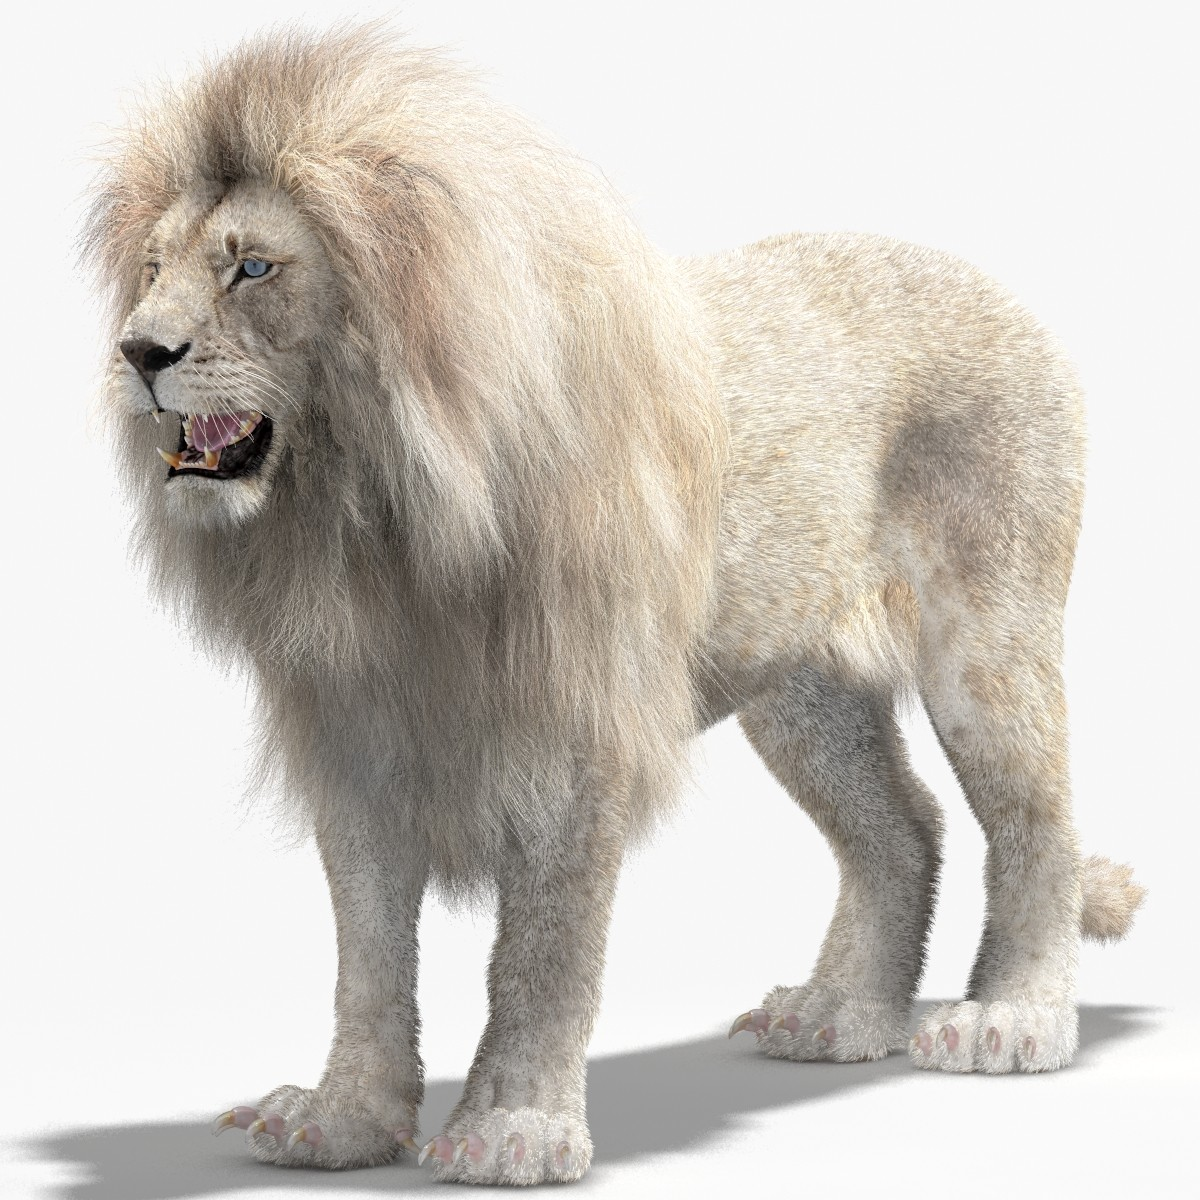 Lion-Mental-Ray-01.jpg